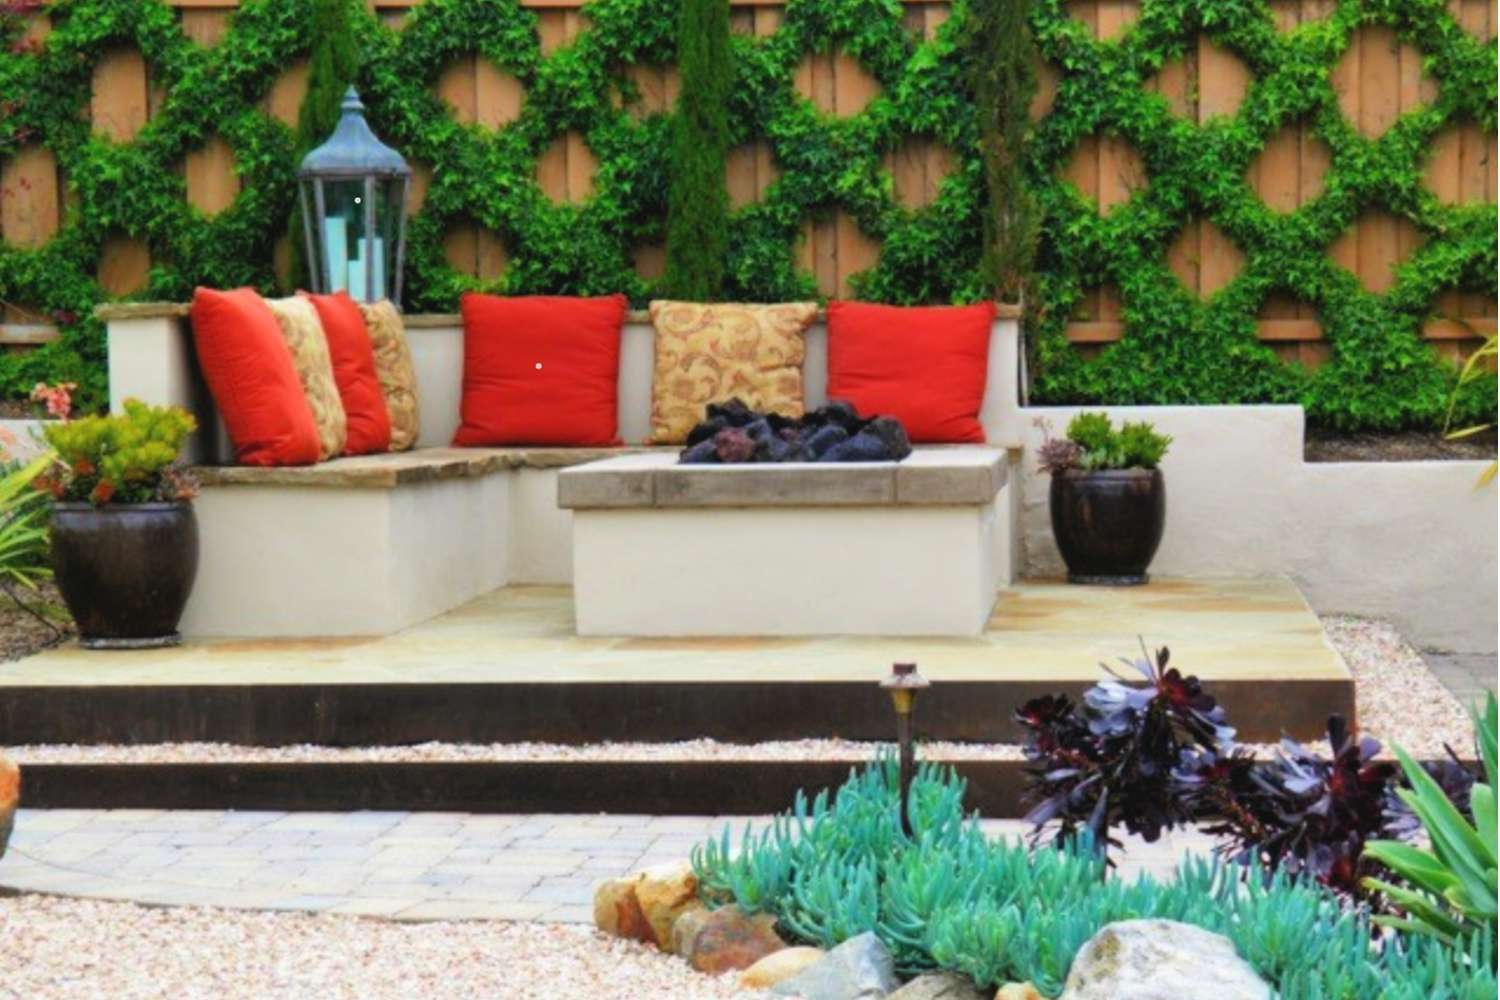 Vertical garden is a diagonal pattern near a patio with furniture and pillows.